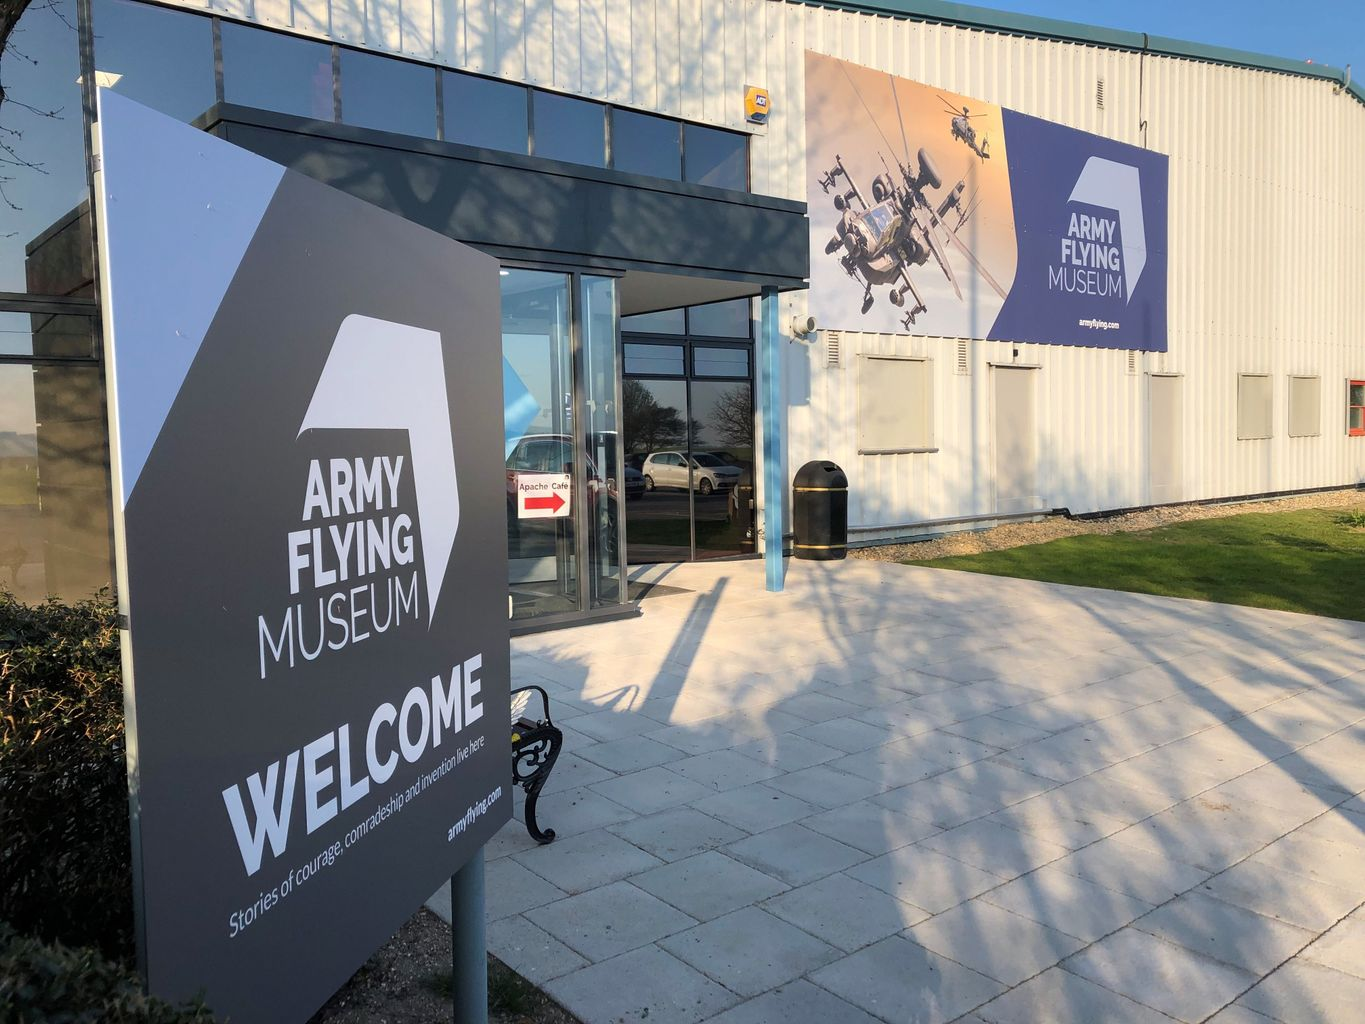 Army Flying Museum gets £29,000 of lottery funding